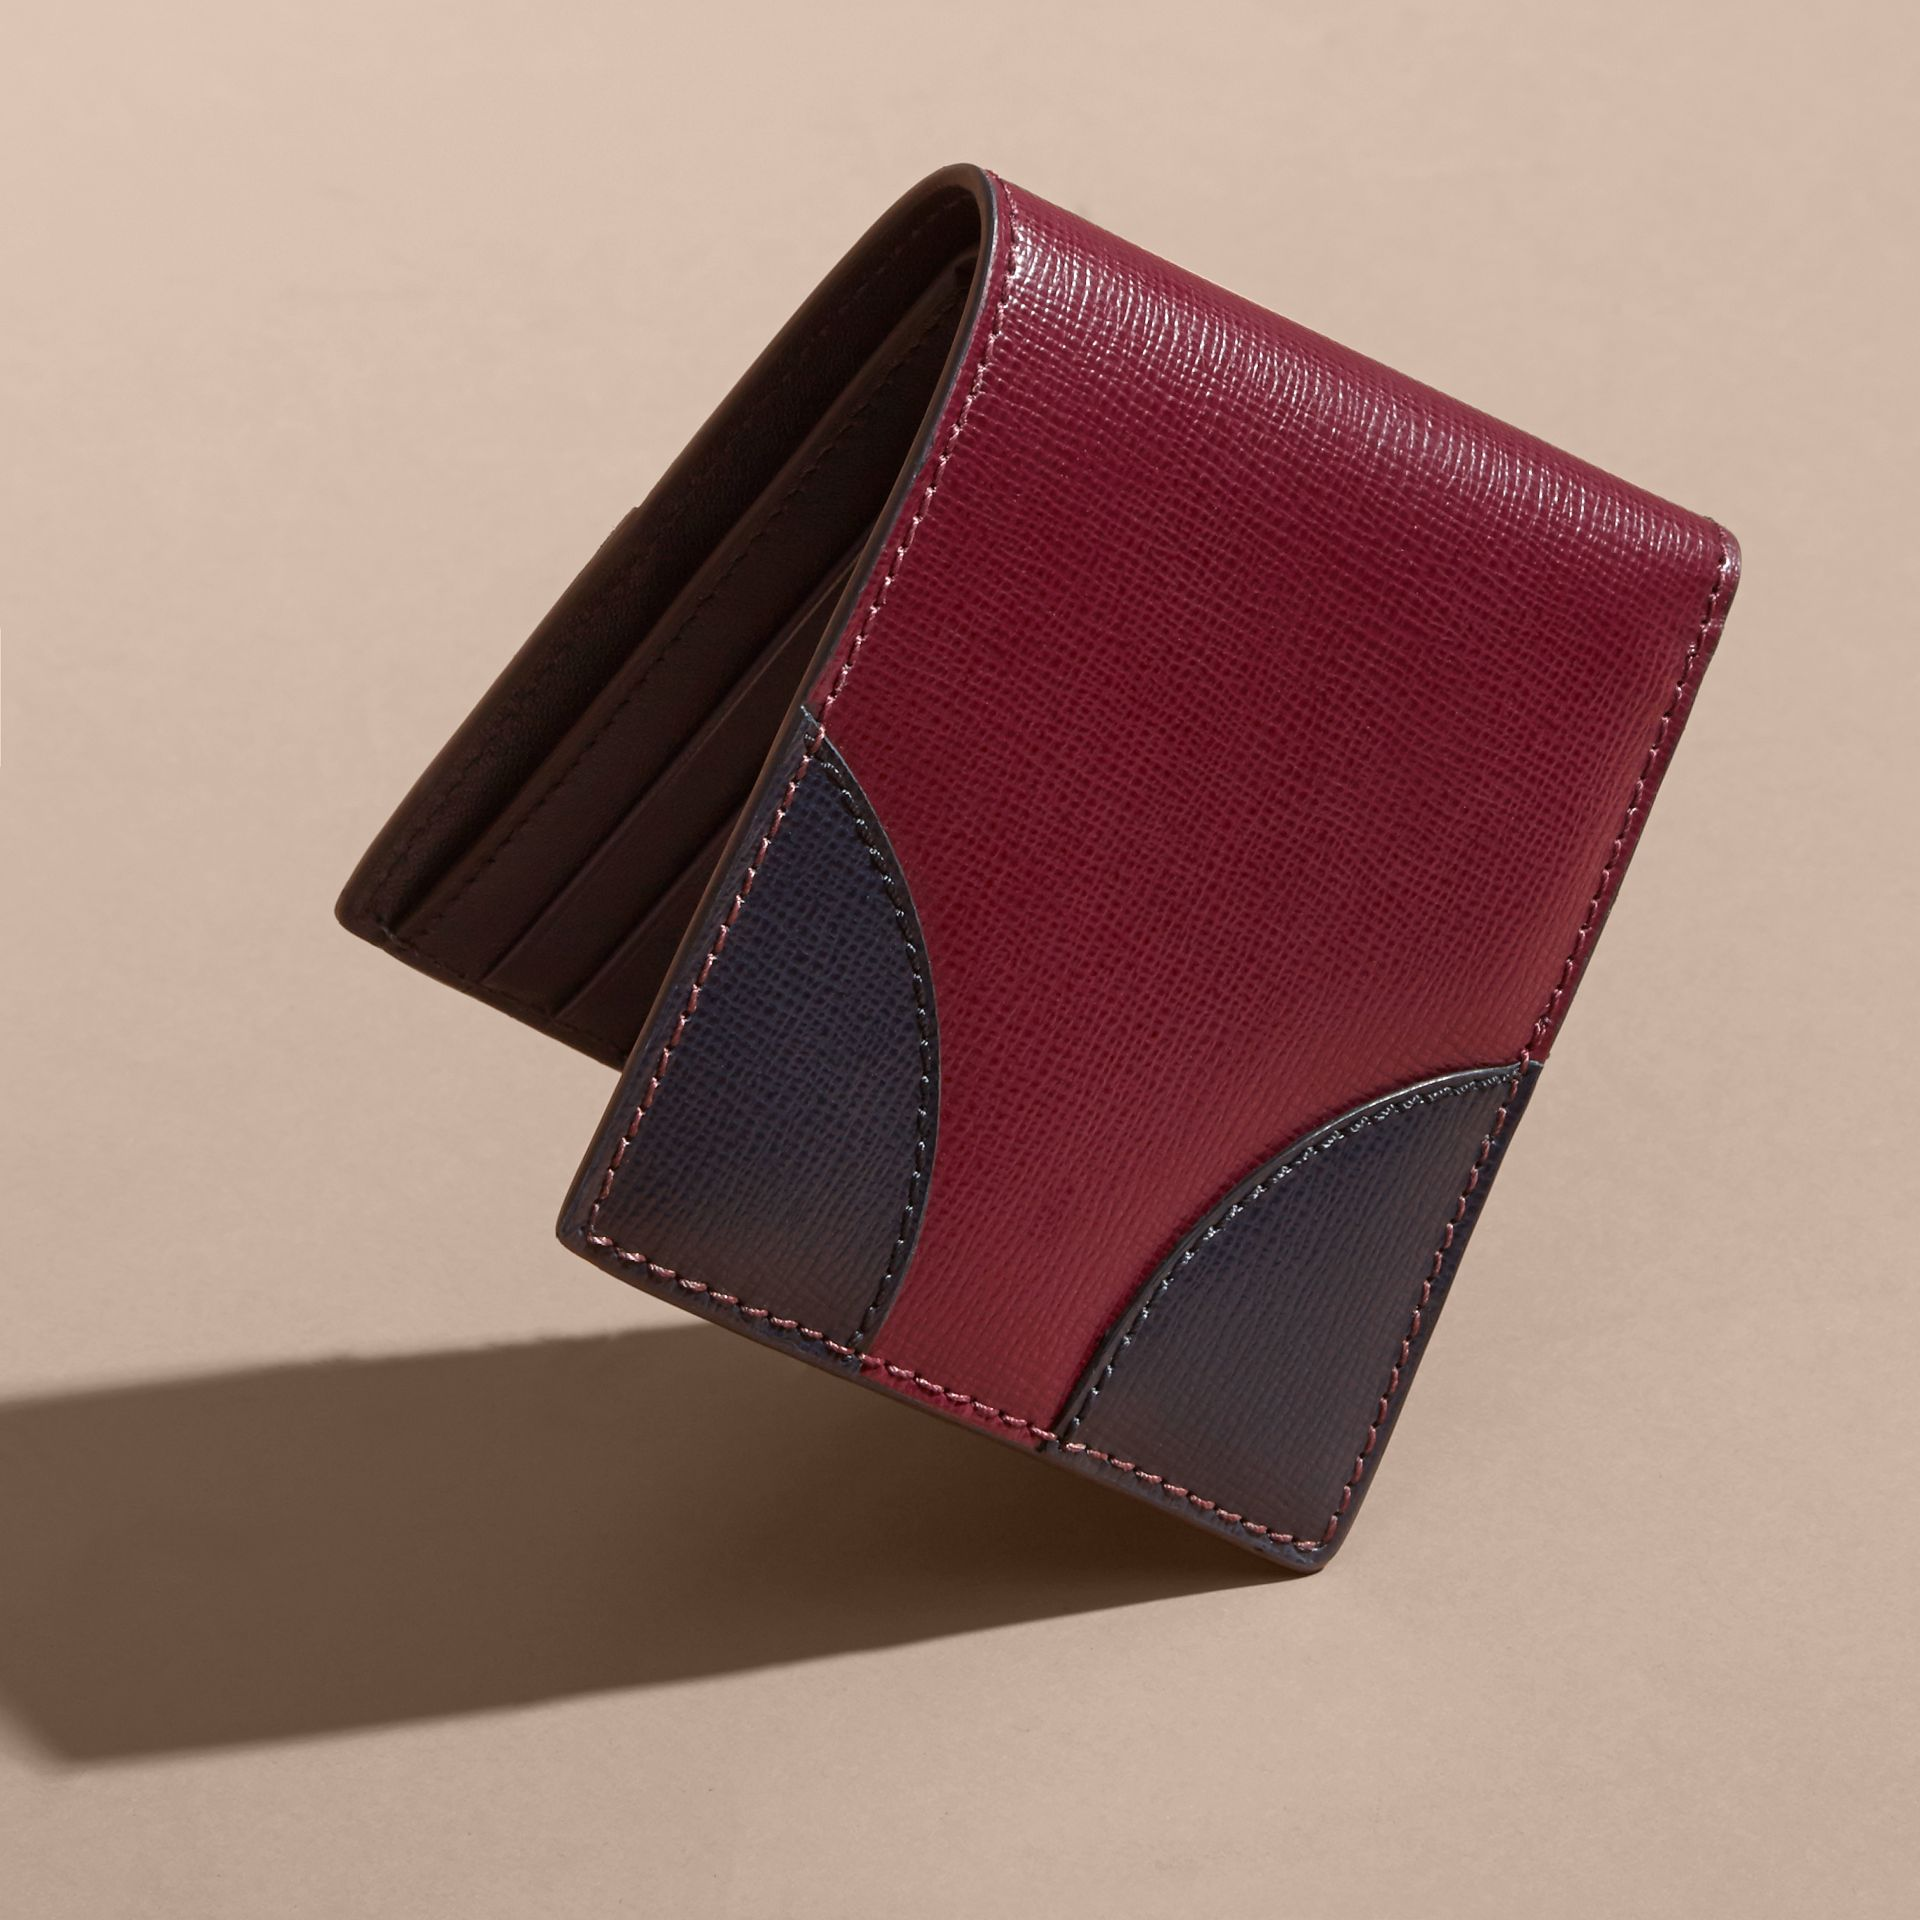 Two-tone London Leather International Bifold Wallet in Burgundy Red - gallery image 3